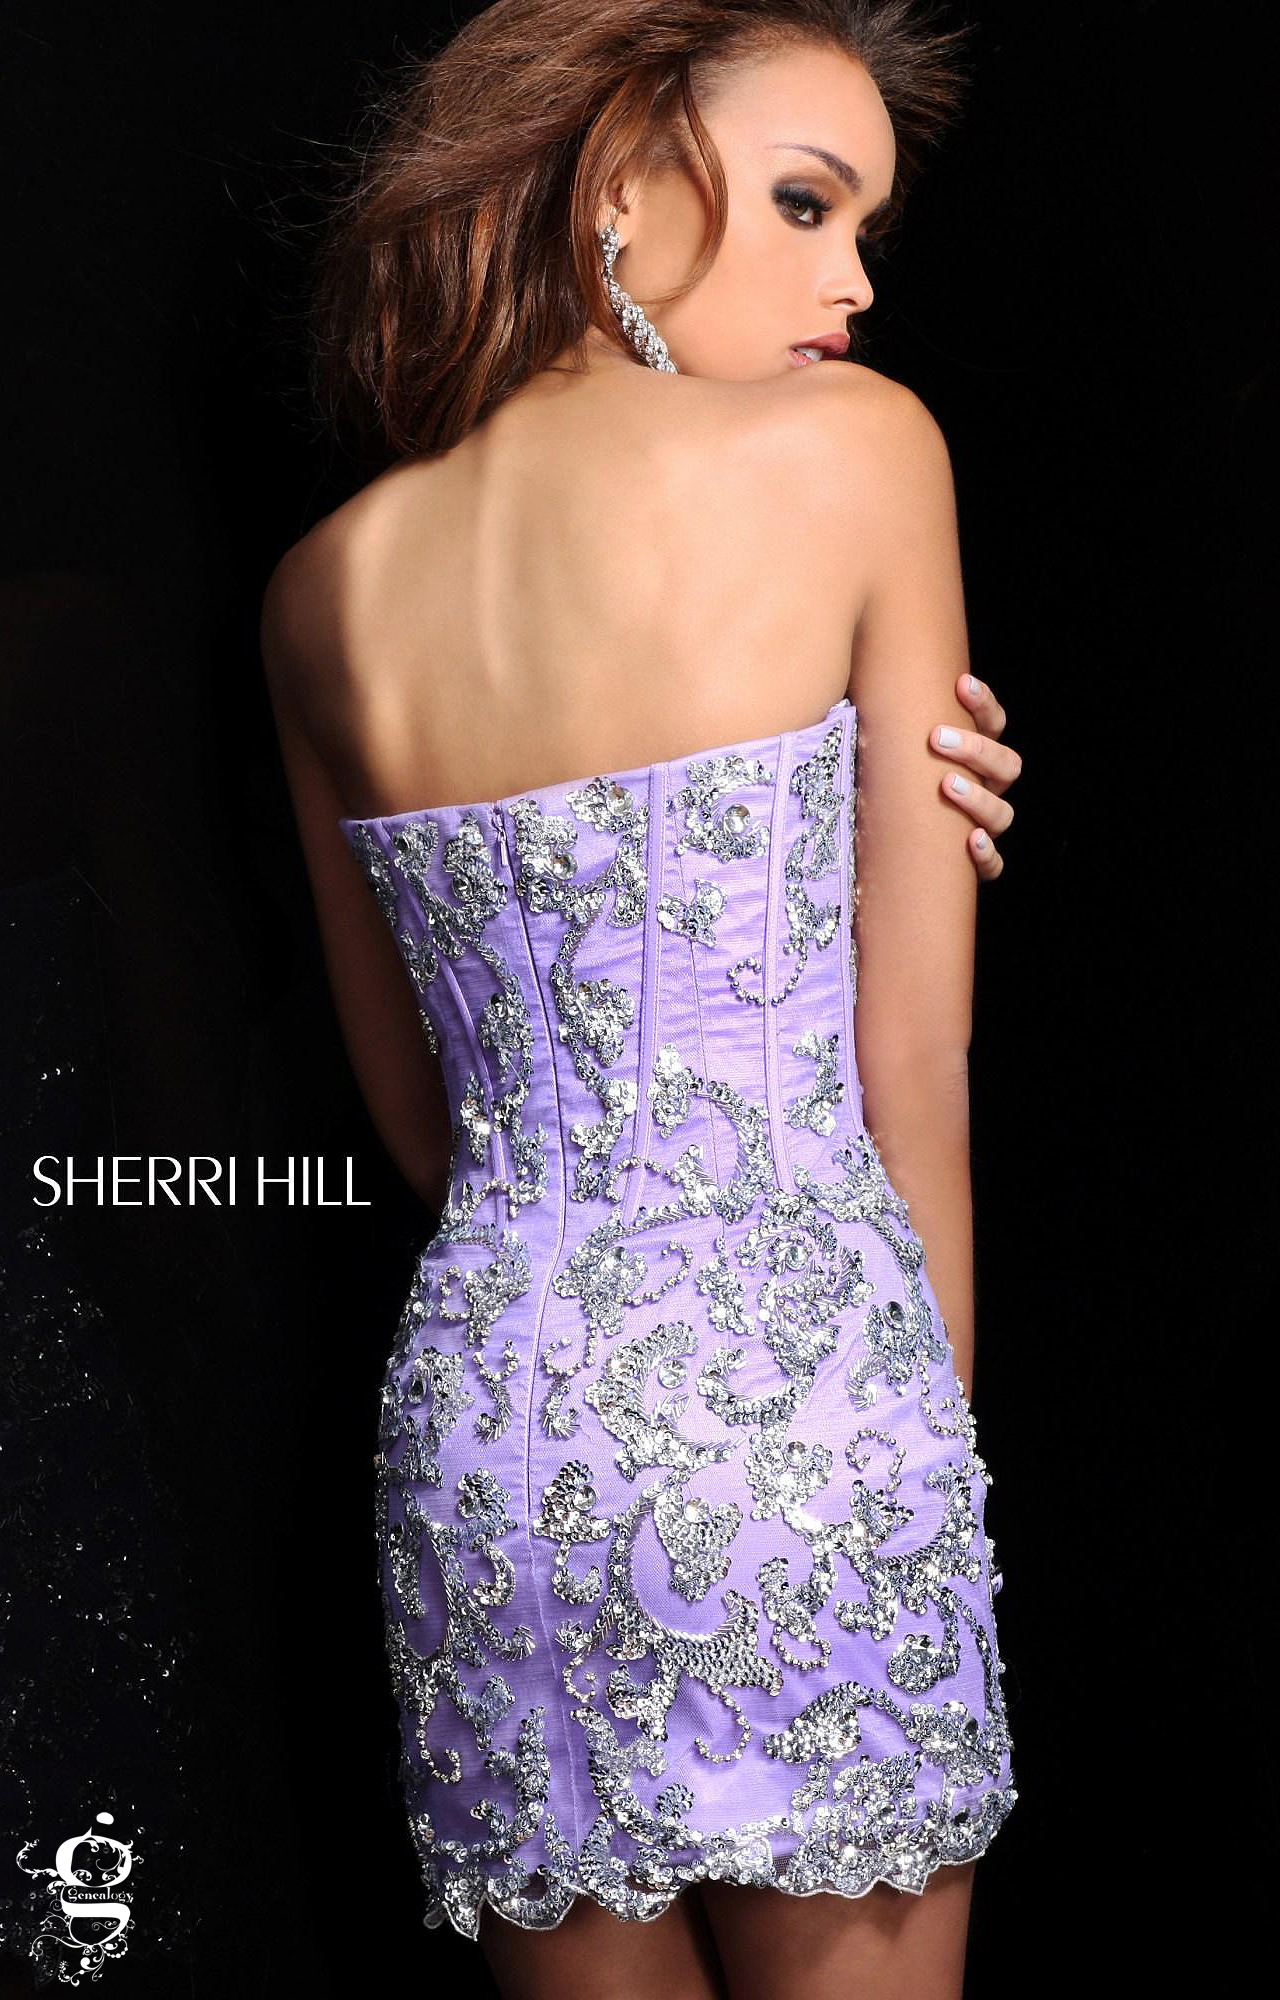 Sherri Hill 2974 The Delight Gown Prom Dress